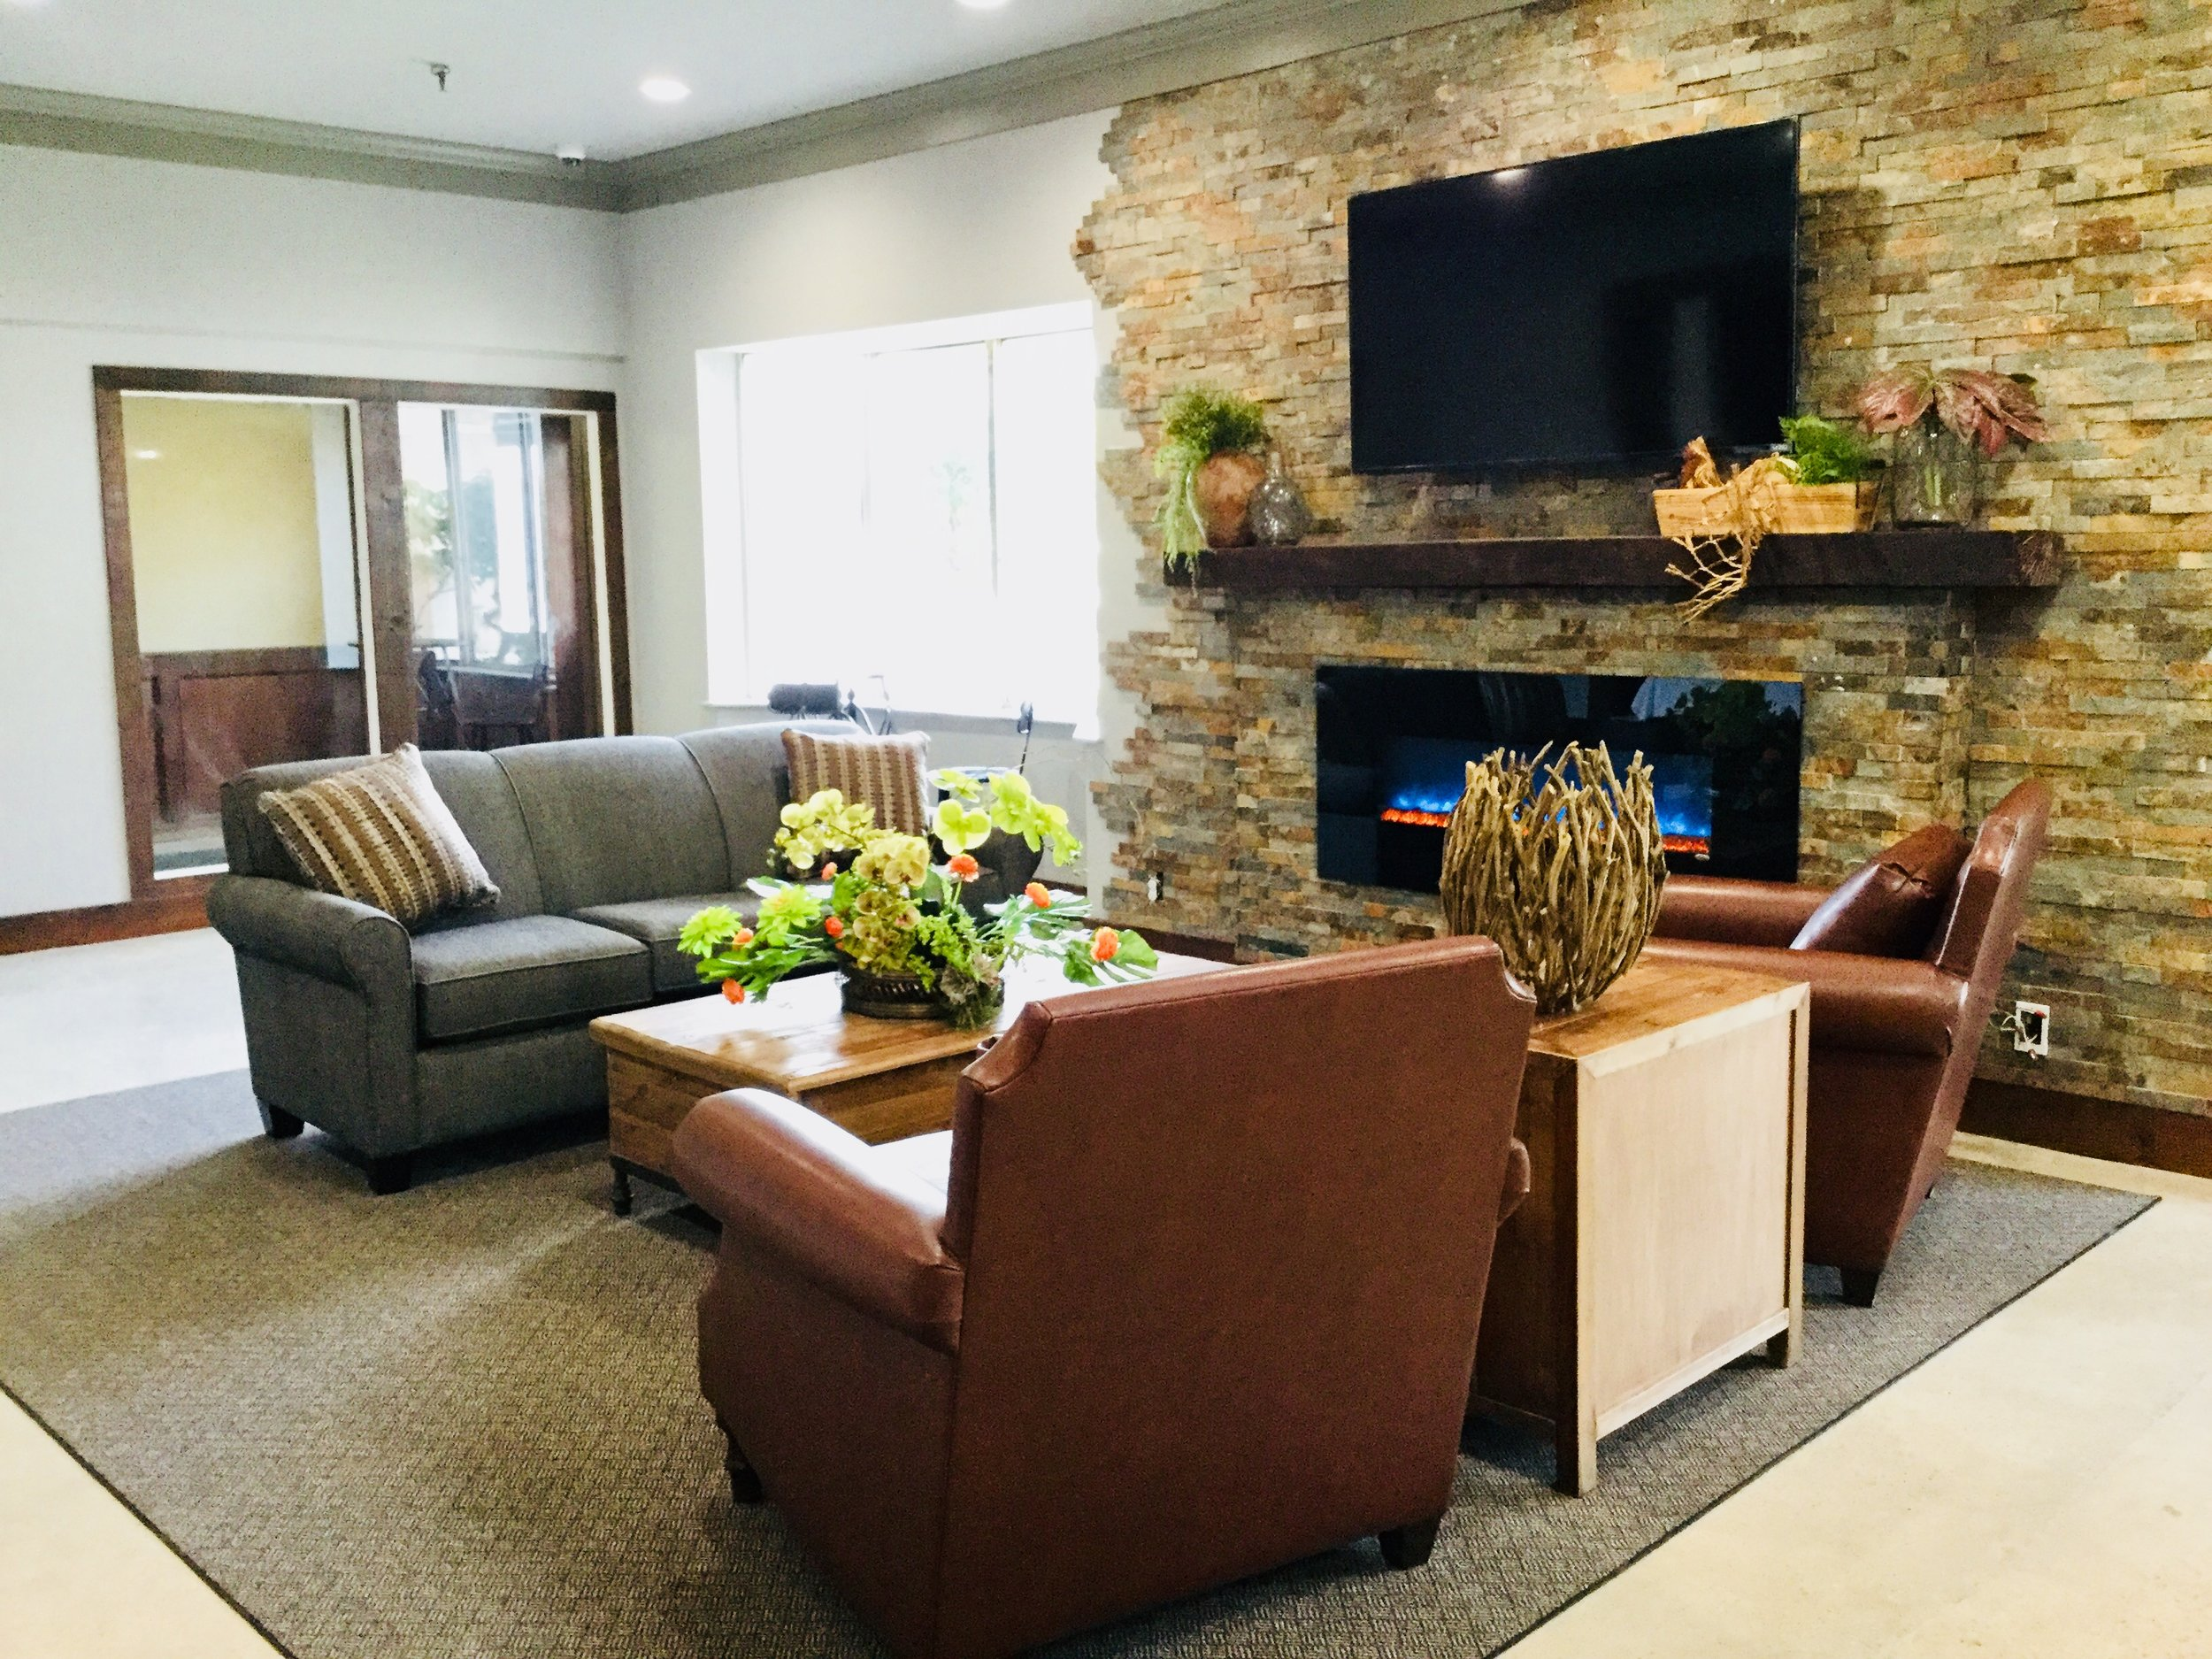 New lobby furniture with fireplace and tv 2018.jpg